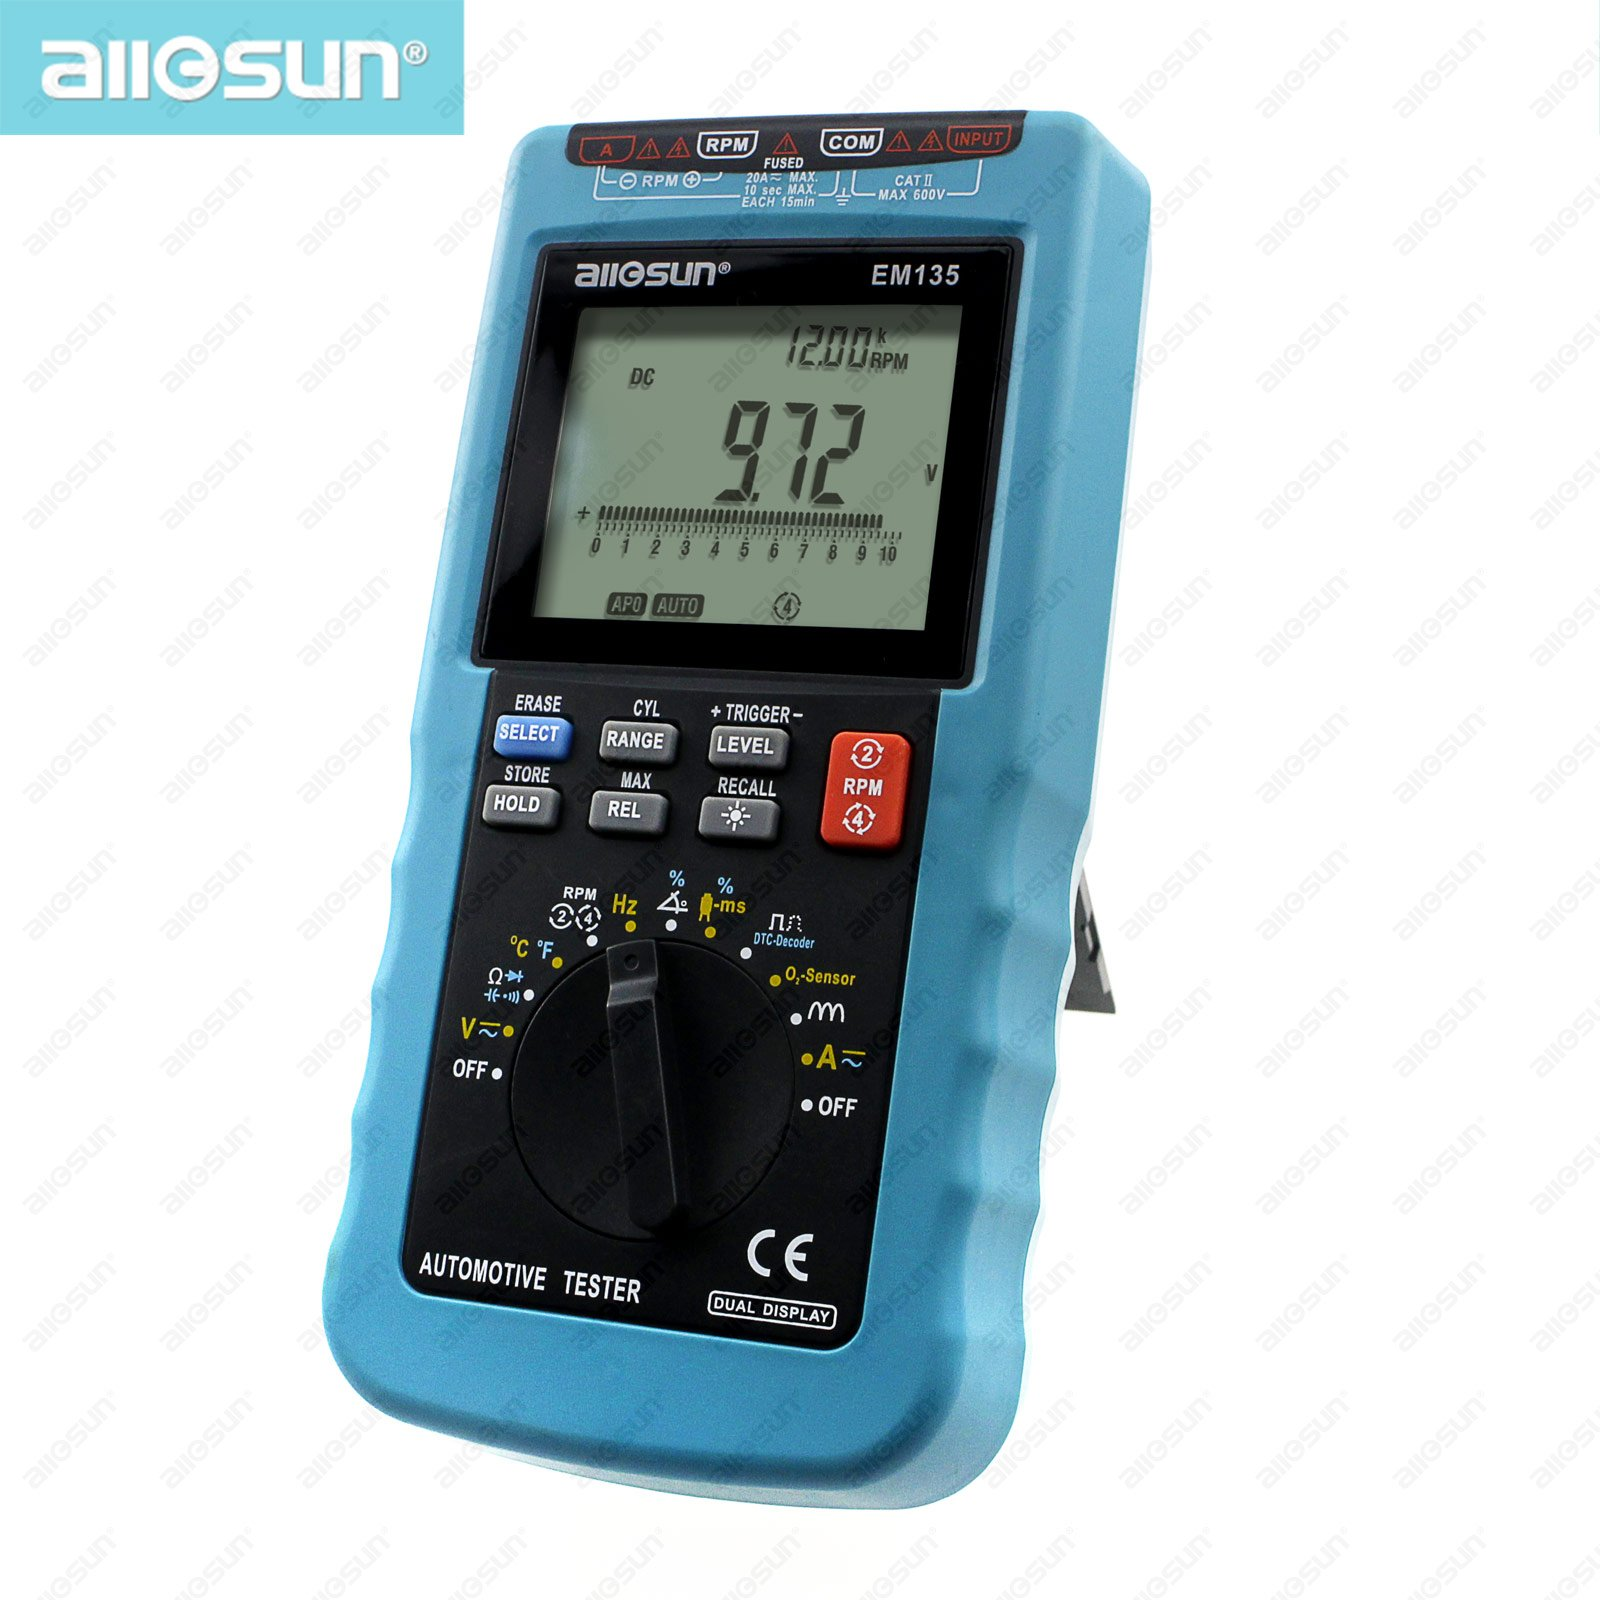 all-sun EM135 Modern Digital Automotive Multimeter 20A ACA/DCA Max Autorange Automotive Tester Multimeter Function